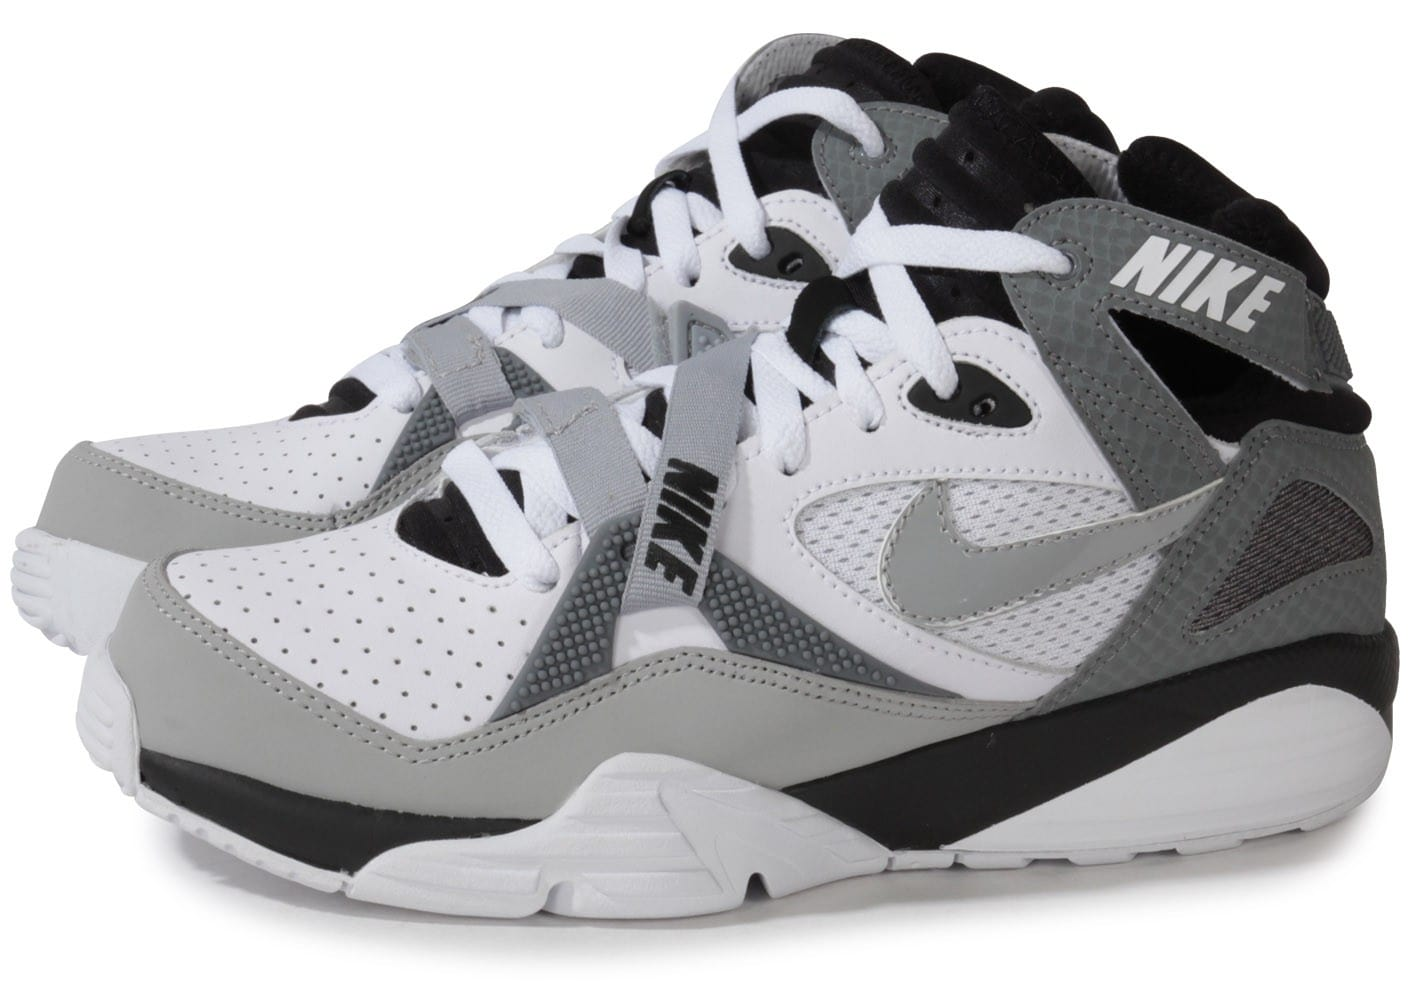 promo code 714a3 f6a93 basket nike trainer homme